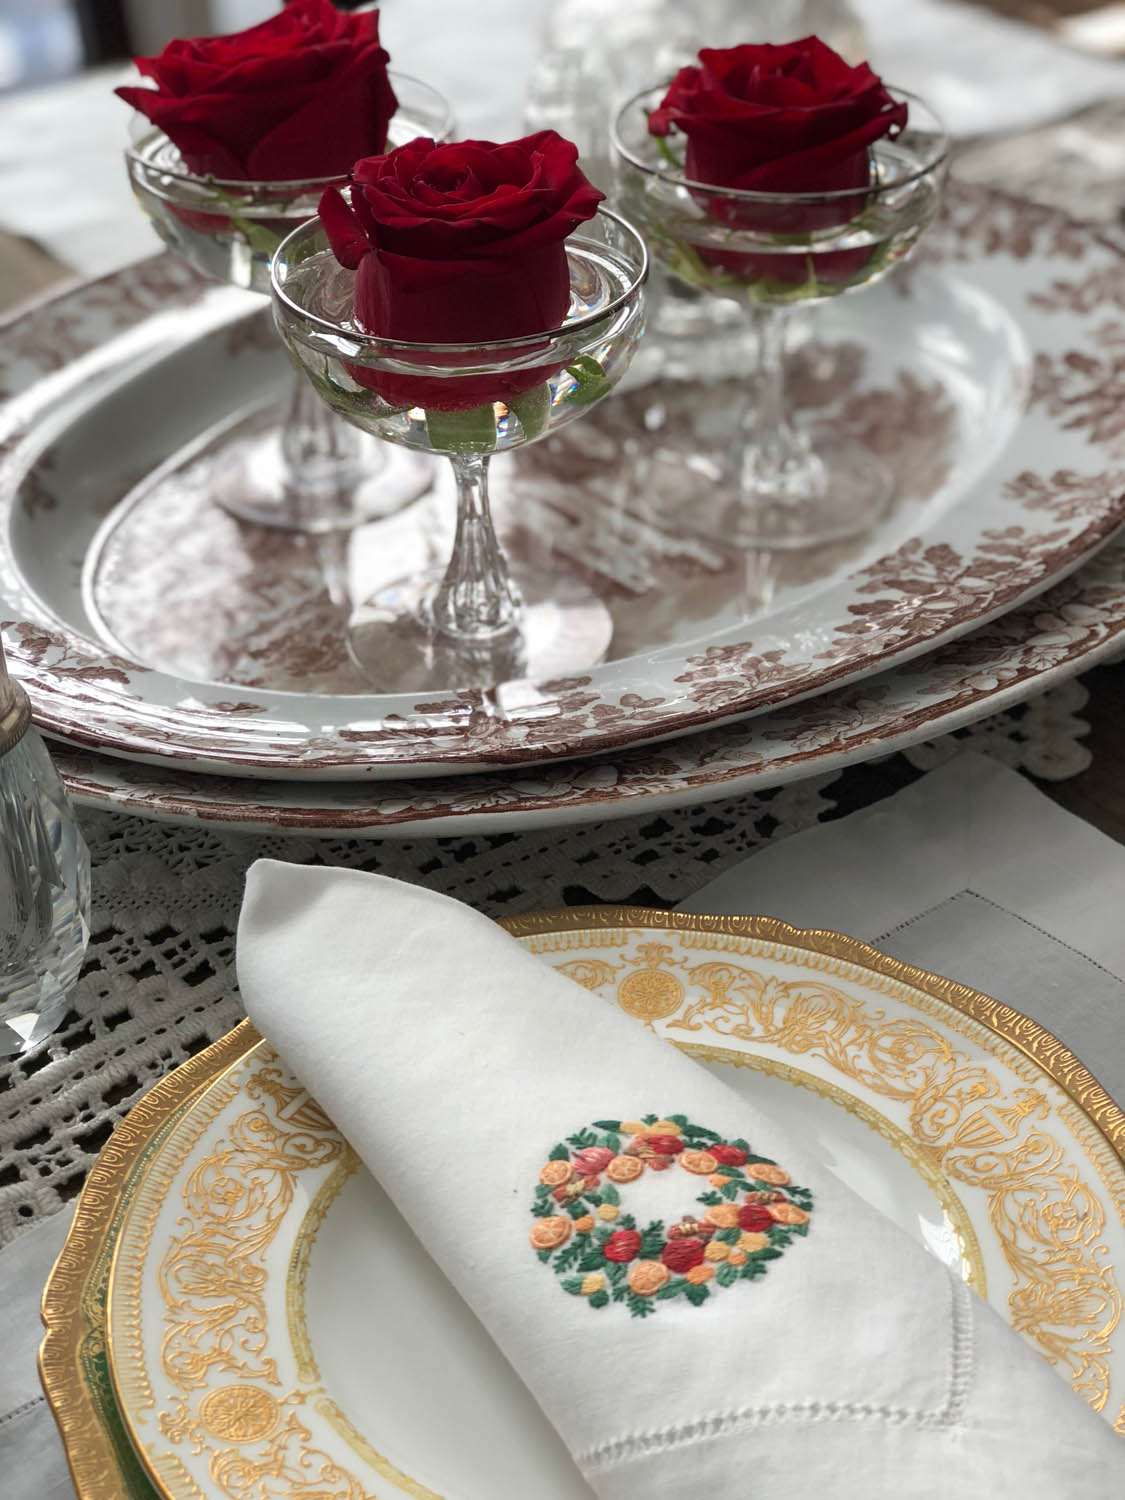 Red roses floated in goblets next to fine china and embroidered napkin